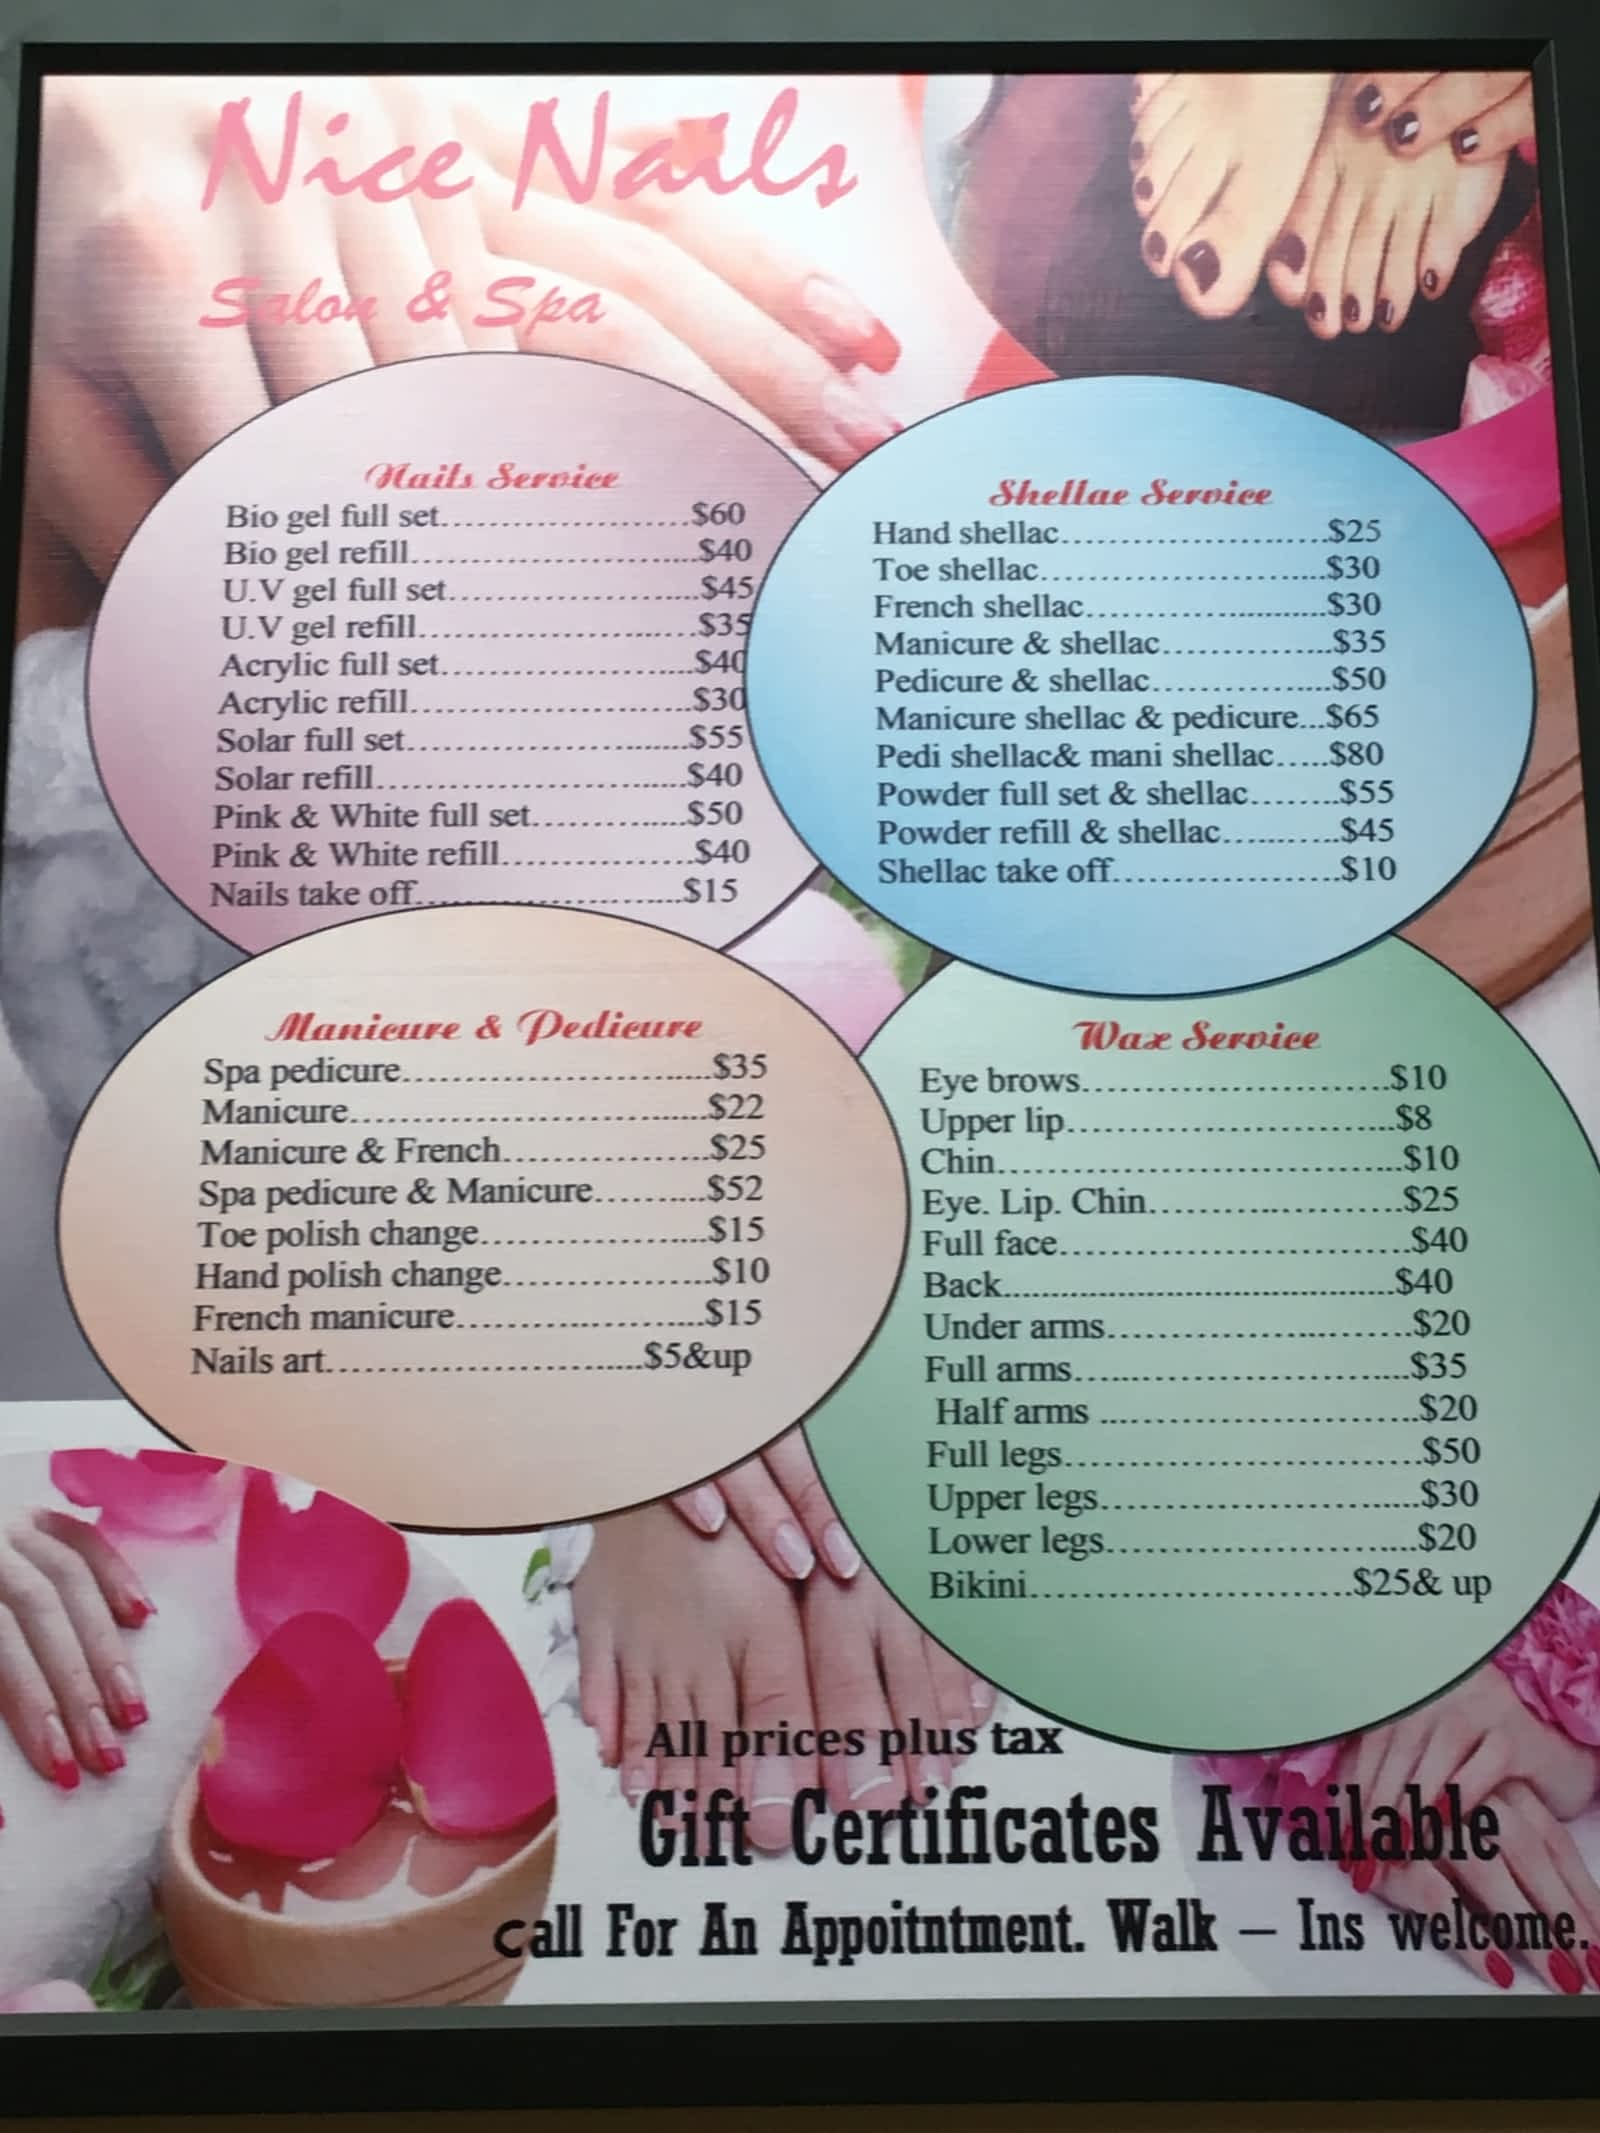 Nice Nails - Opening Hours - 123-133 Church St, Antigonish, NS